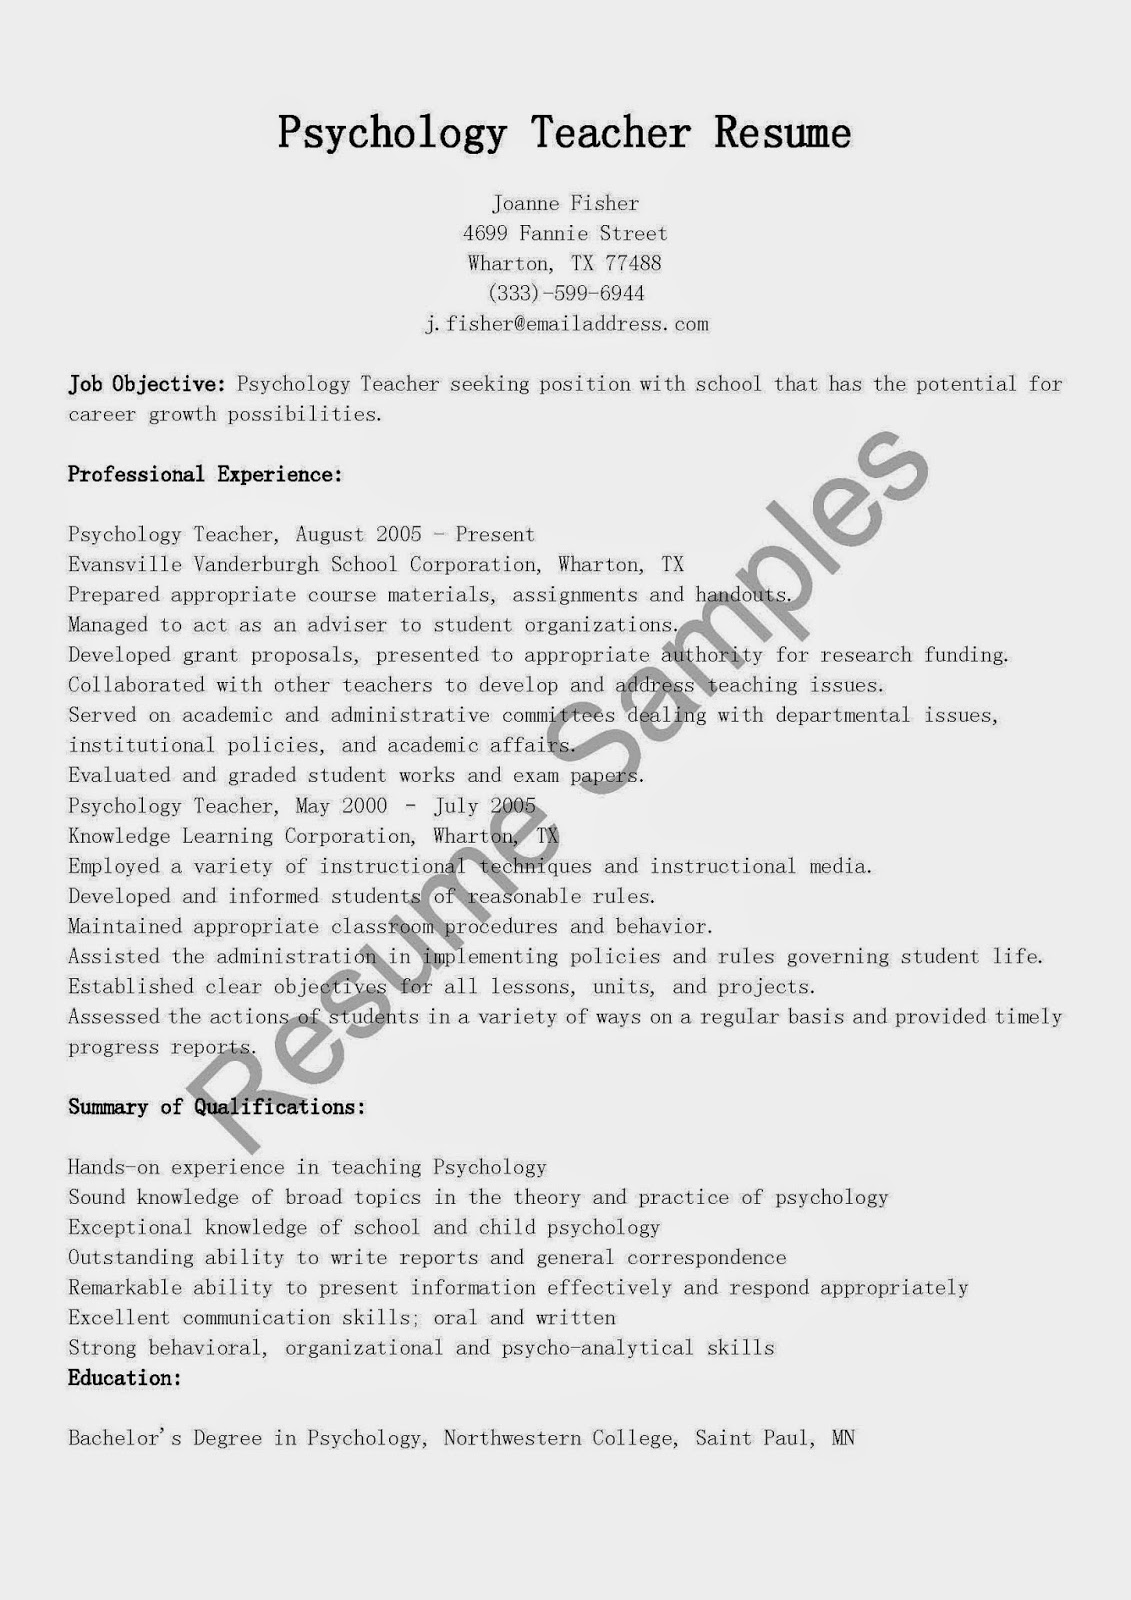 resume samples psychology teacher resume sample